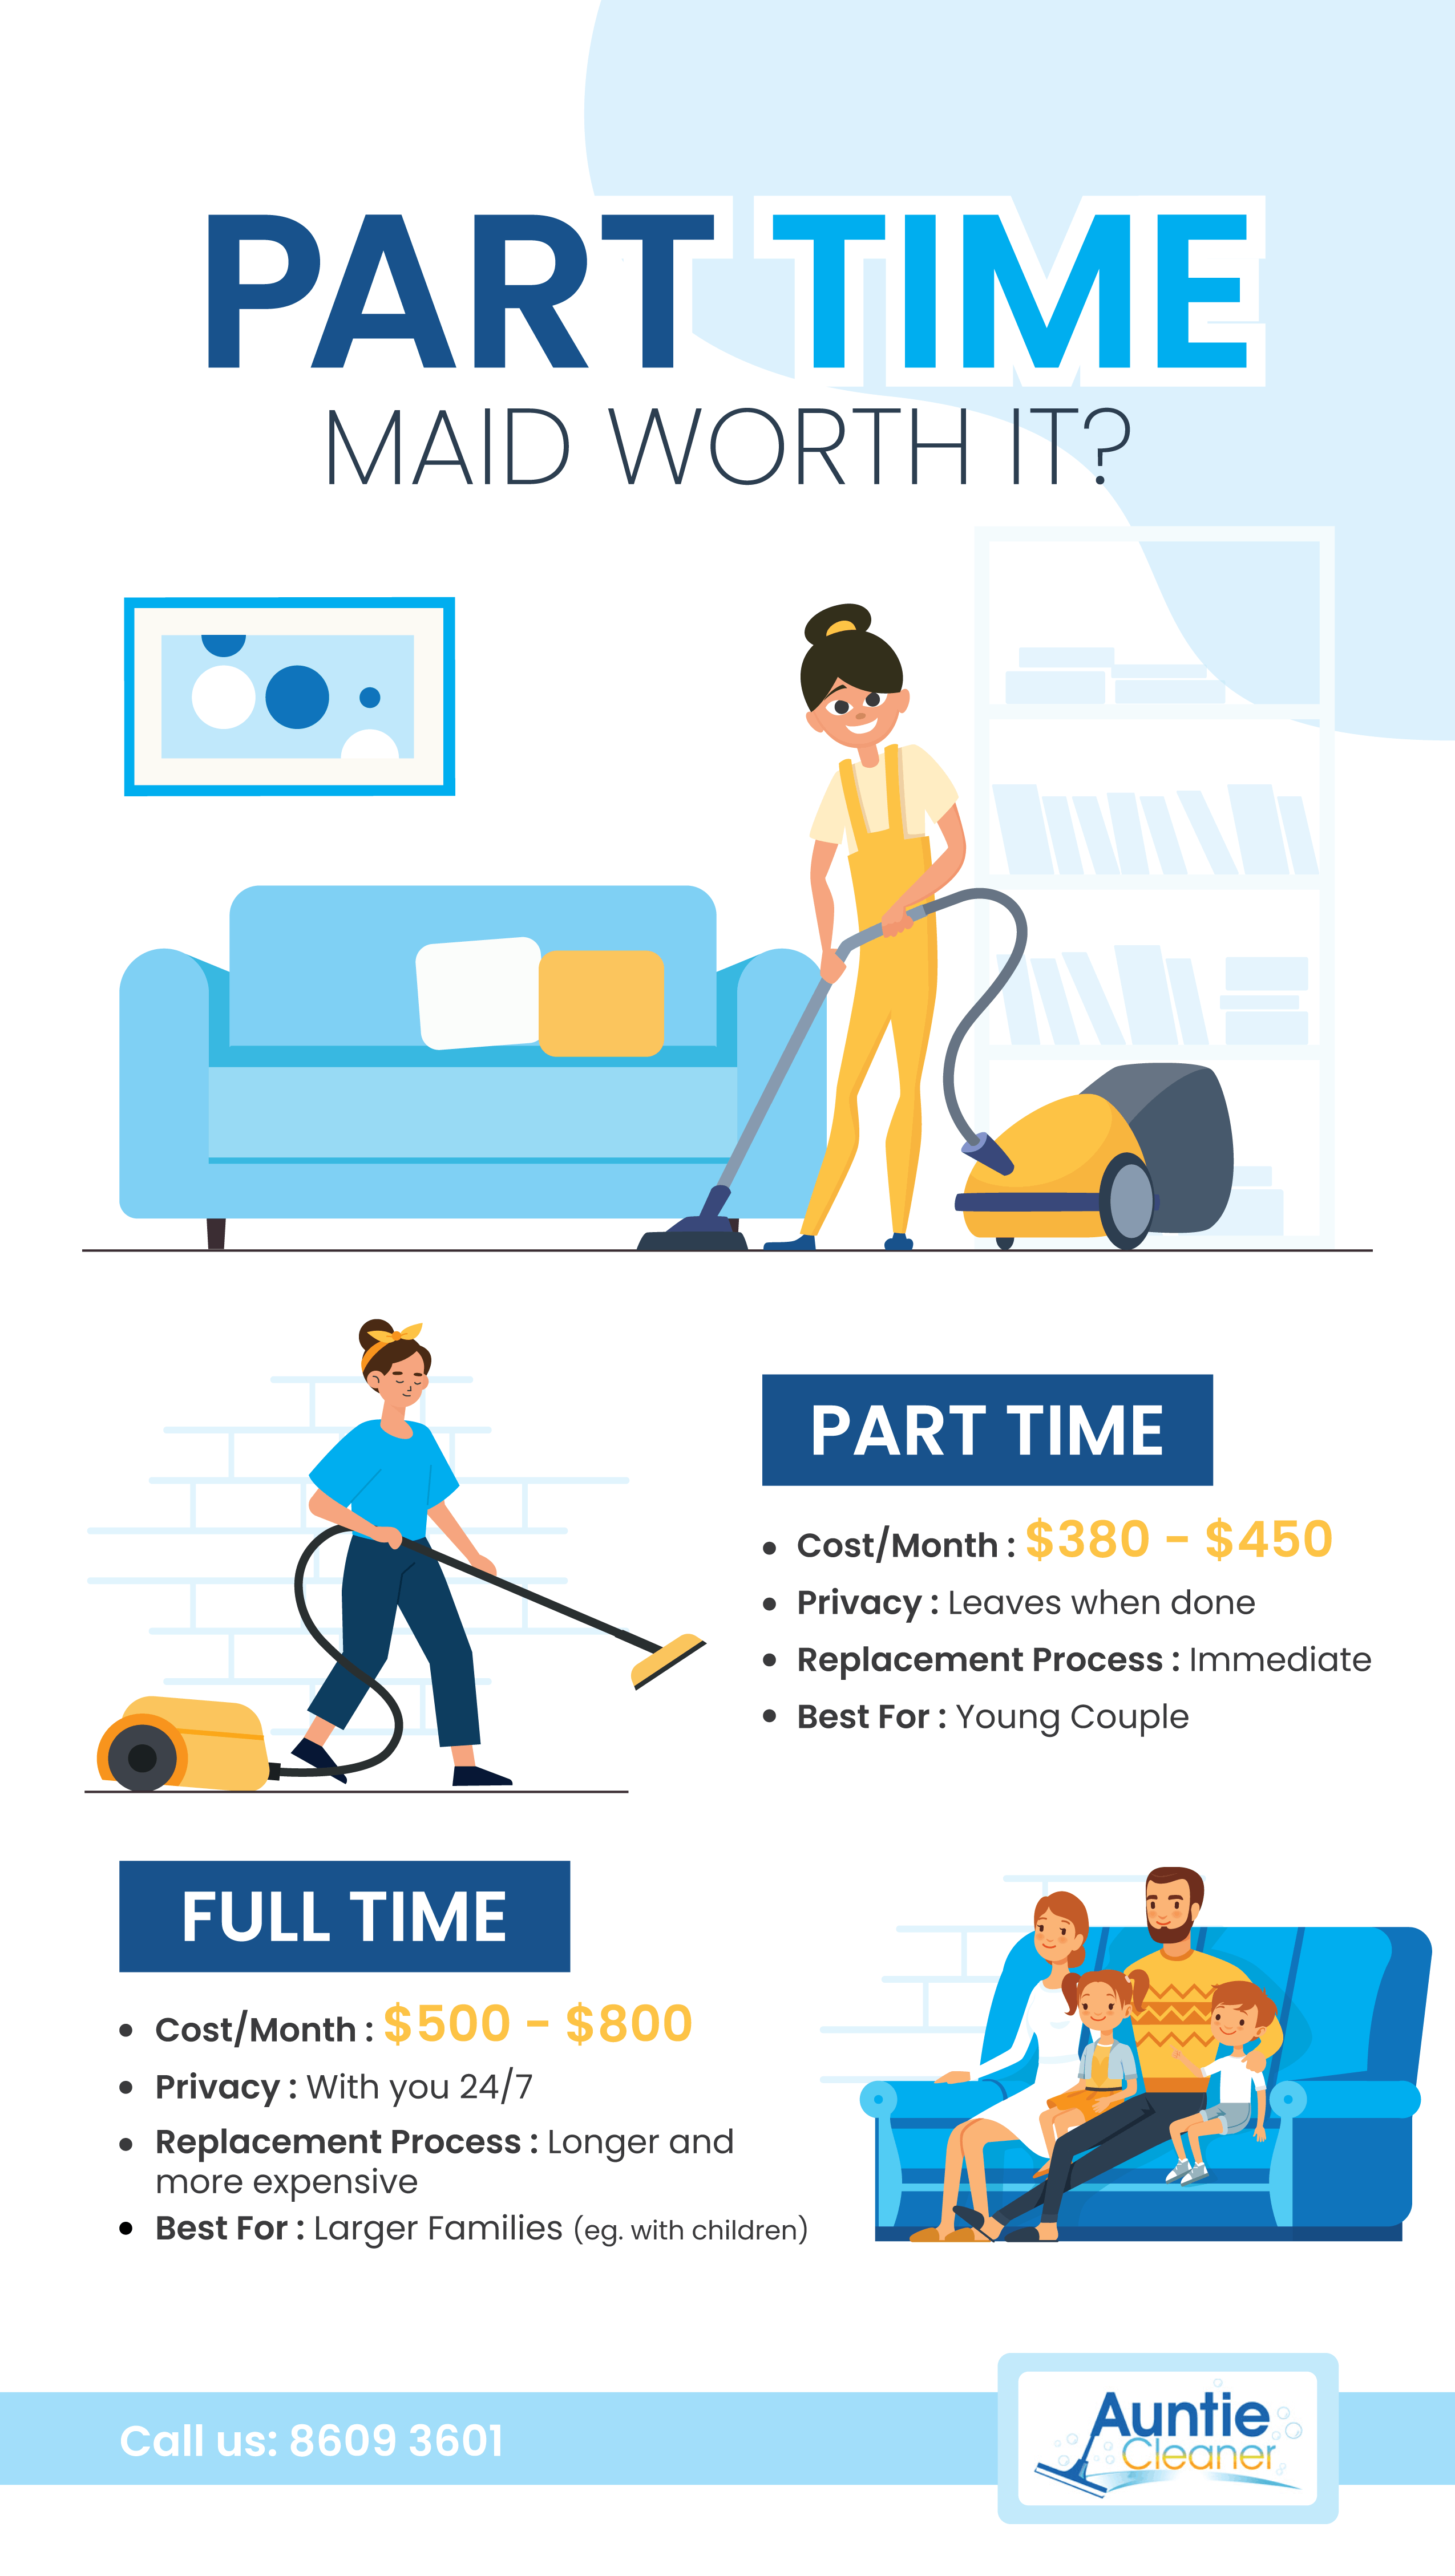 Info-graphic - Part Time Maid Or Full Time Maid?